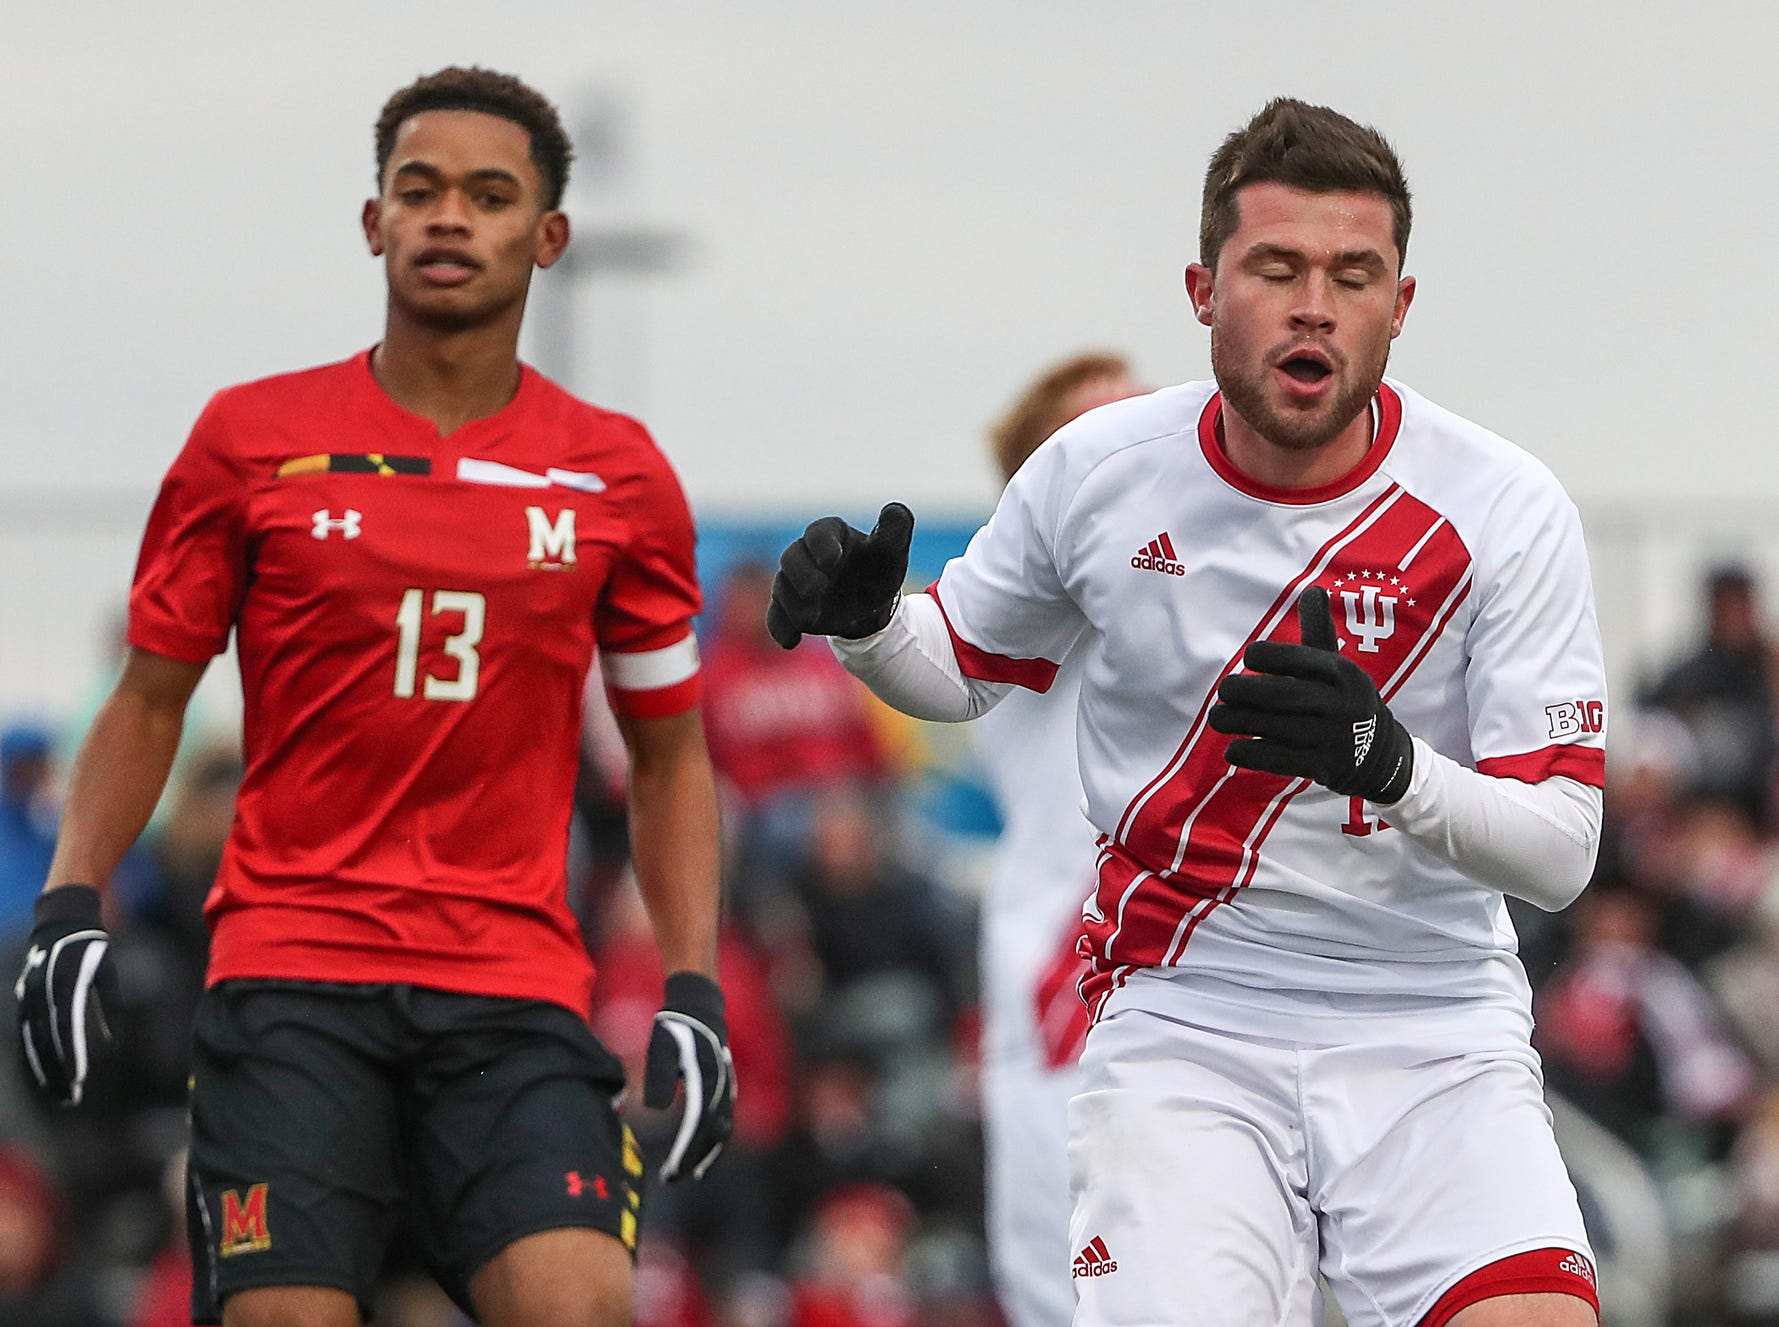 Right, Indiana Hoosiers Austin Panchot (12) reacts after missing a shot at the goal during the first half of Big Ten semifinals at Grand Park in Westfield, Ind., Friday, Nov. 9, 2018. Indiana and Maryland tied 1-1, with the Hoosiers advancing in penalty kicks, 4-3.